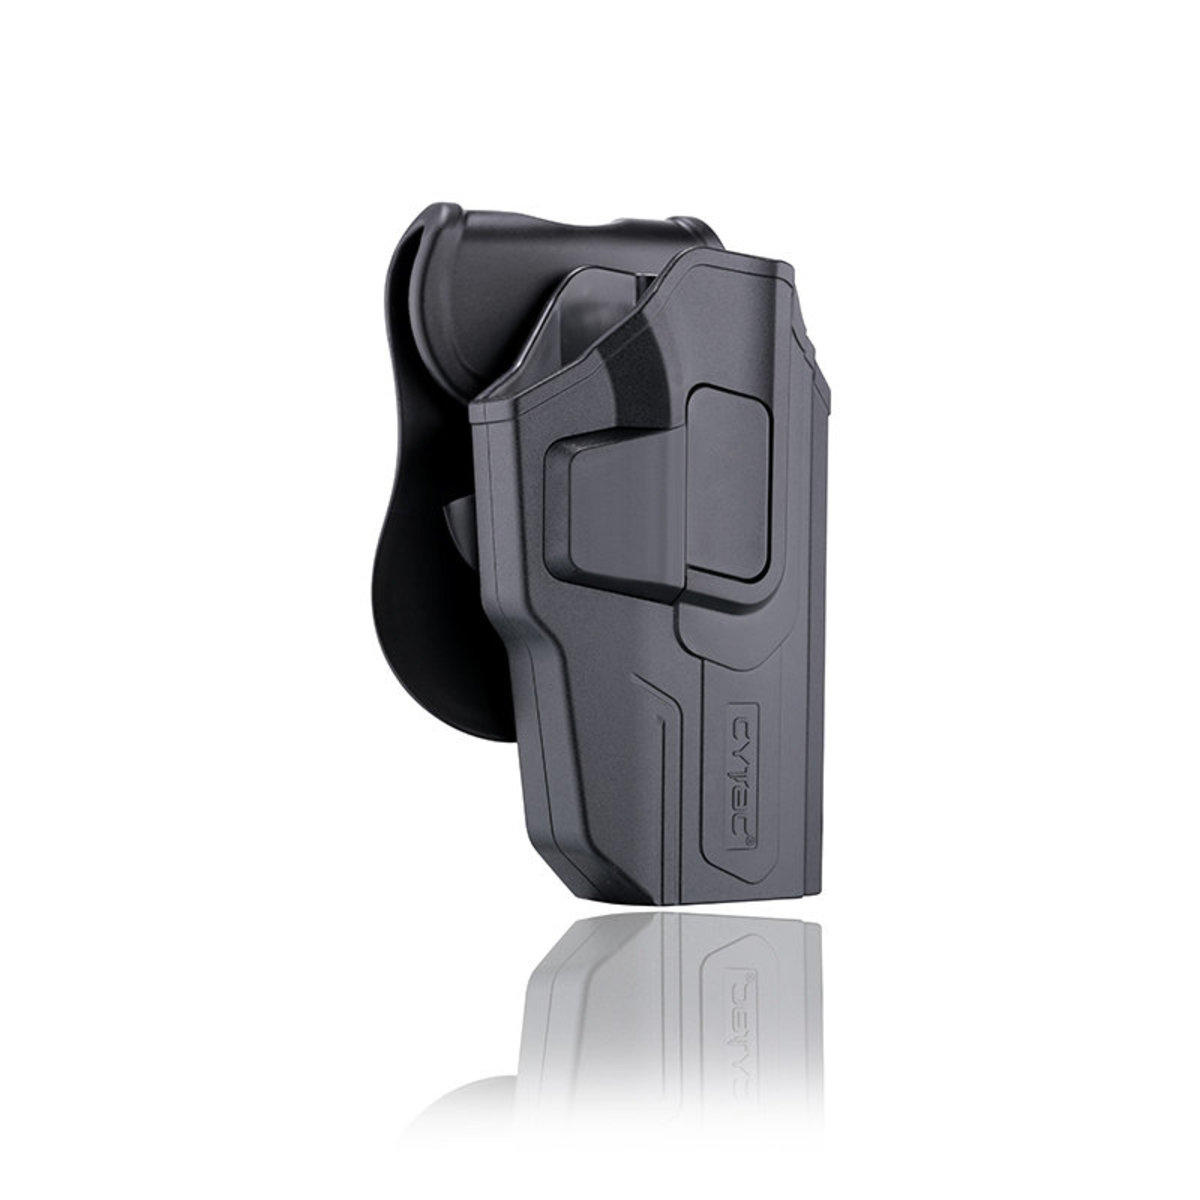 View larger image of Cytac R-Defender Gen3 OWB Holster - Fits Sig Sauer P226, P228, P229